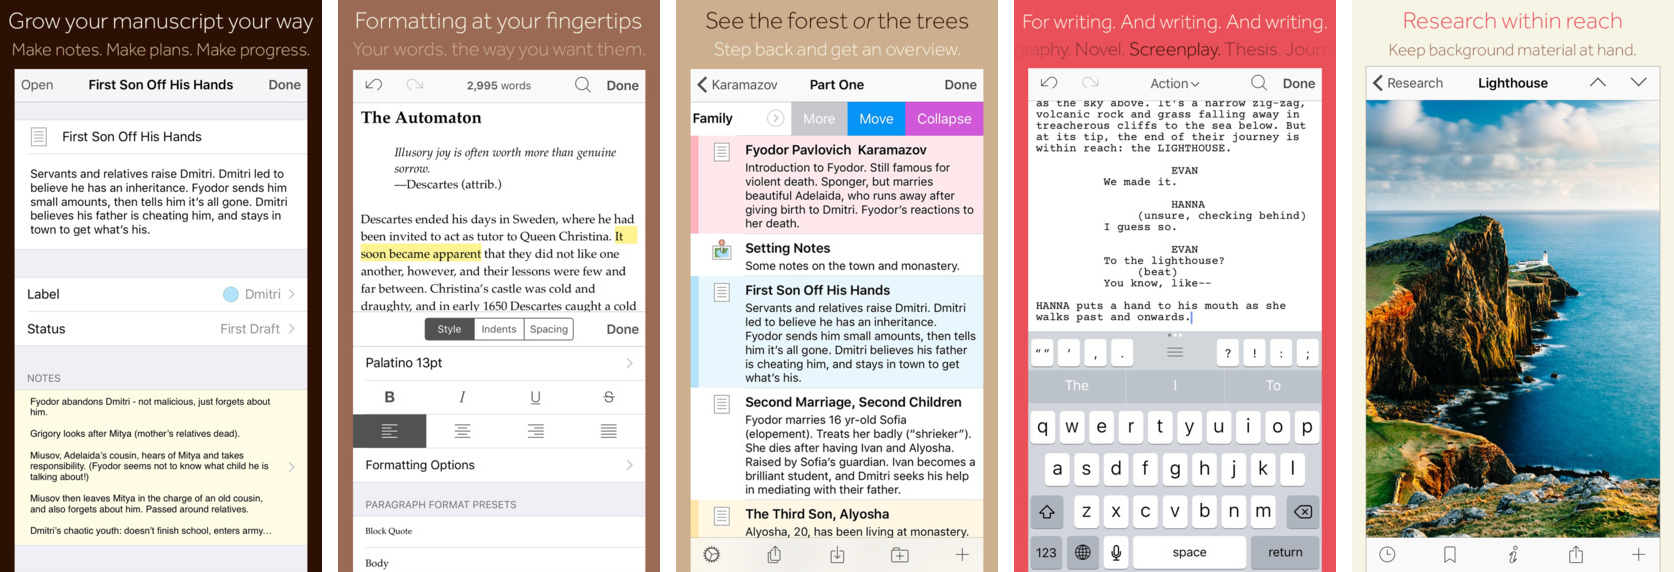 Scrivener 1.0 for iOS iPhone screnshot 001